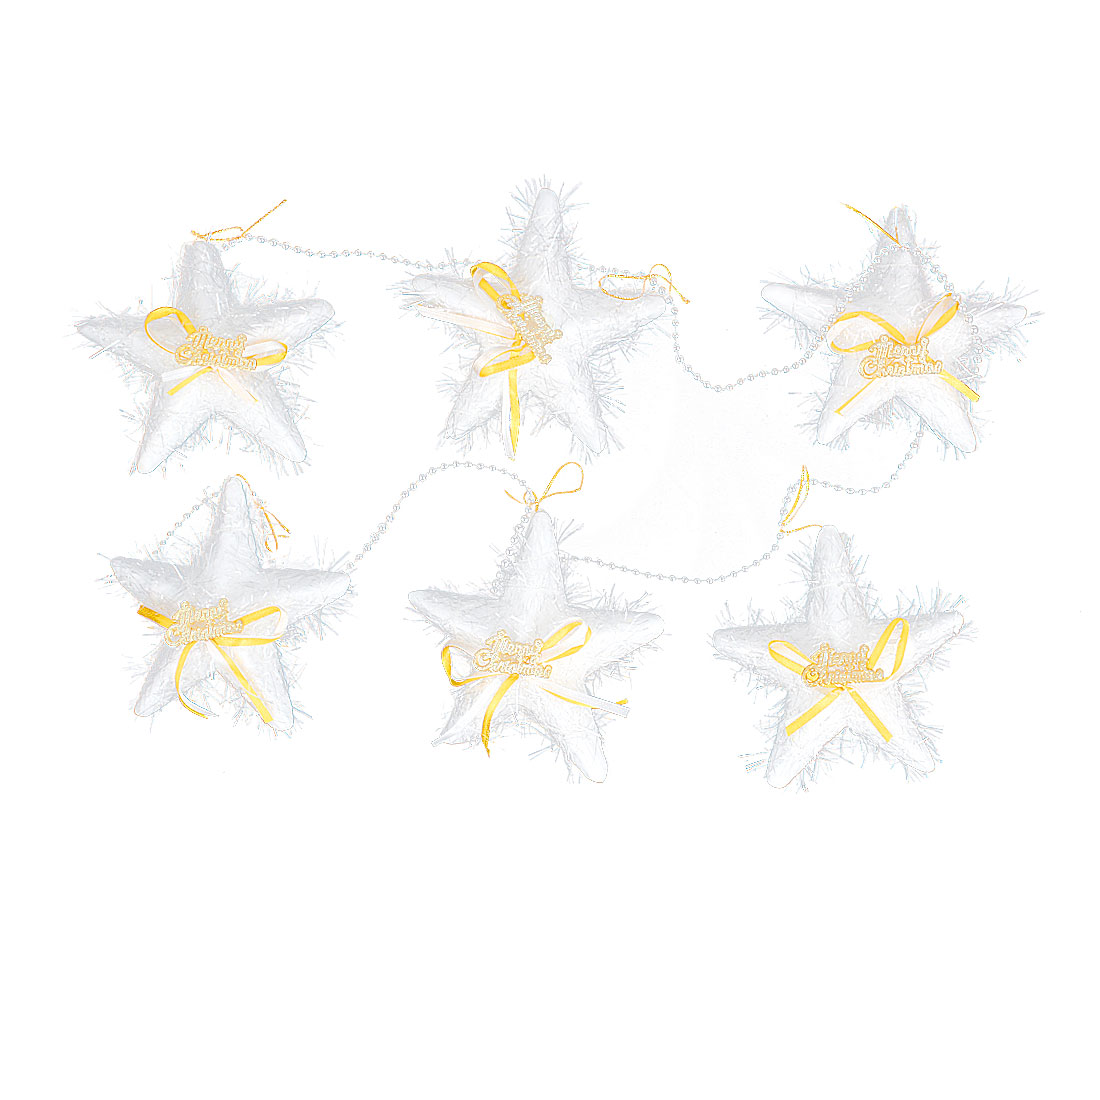 1M Plastic Beads Linking Yellow Bowknot Accent Pentagram Pendant White 6 in 1 for Christmas Tree Hanging Decor